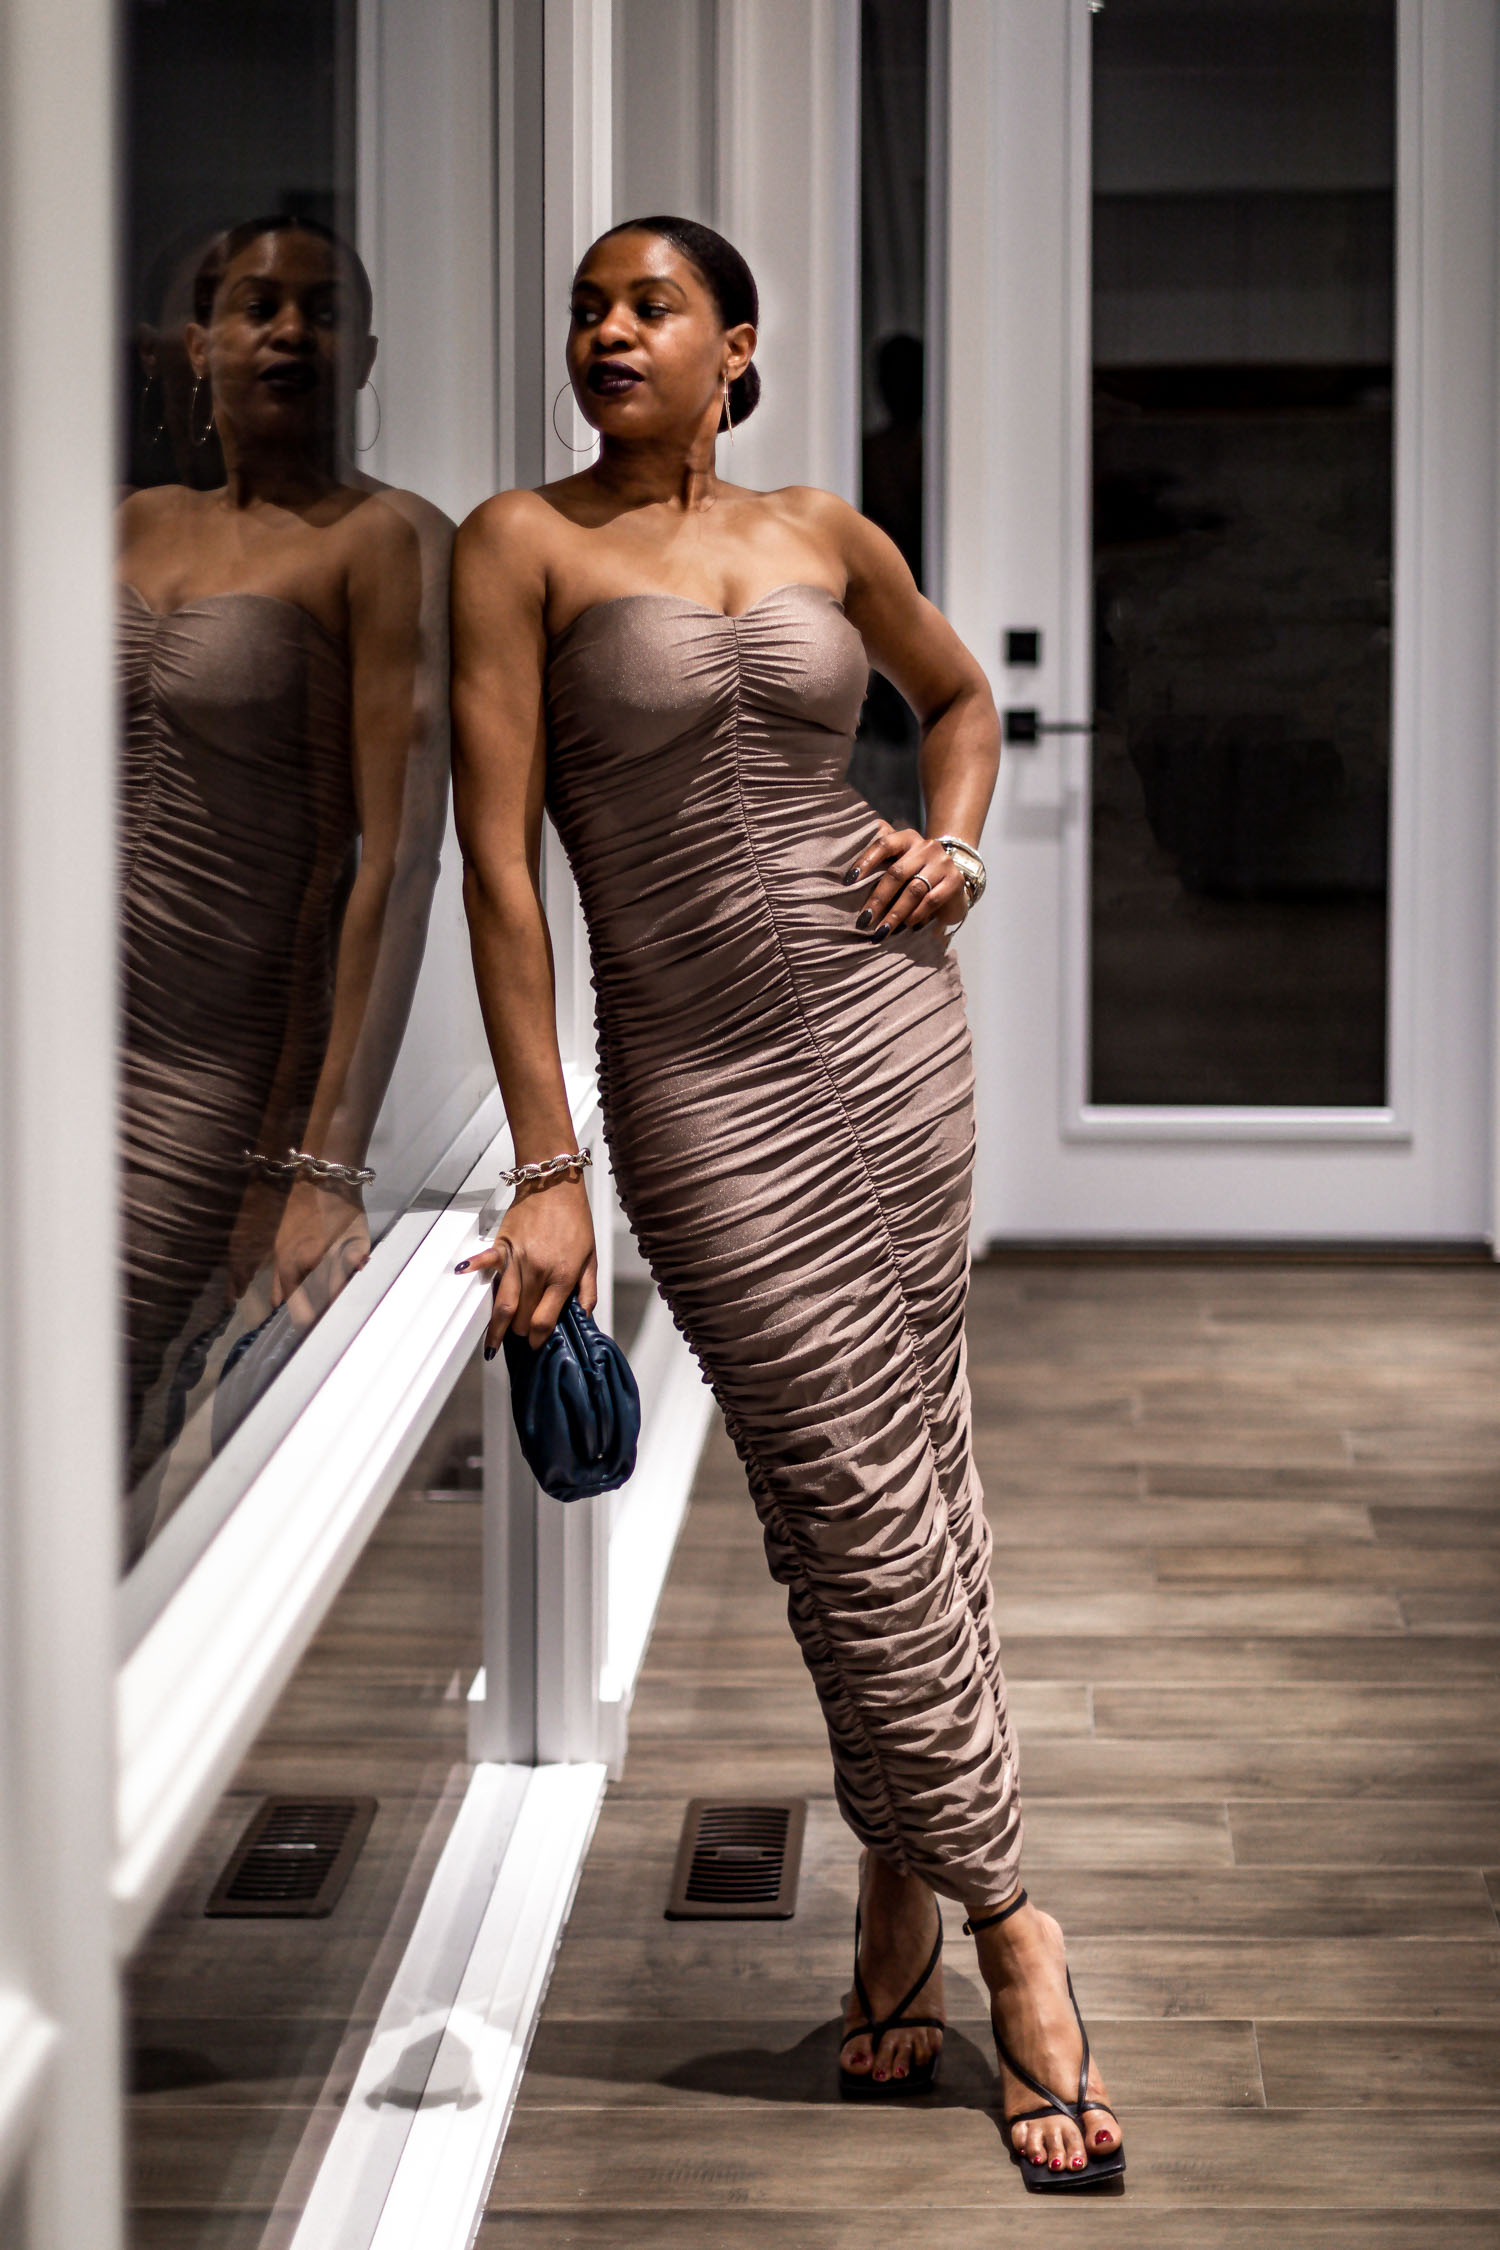 what to wear for date night, atlanta blogger monica awe-etuk wearing a fitted dress for date night, how to nail date night, what you should do for date night, bottega stretch sandals, bottega clutch, mini clutch, how to style bottega stretch clutch, how to style a clutch, ladyee boutique, top atlanta blogger, top black blogger, black blogger